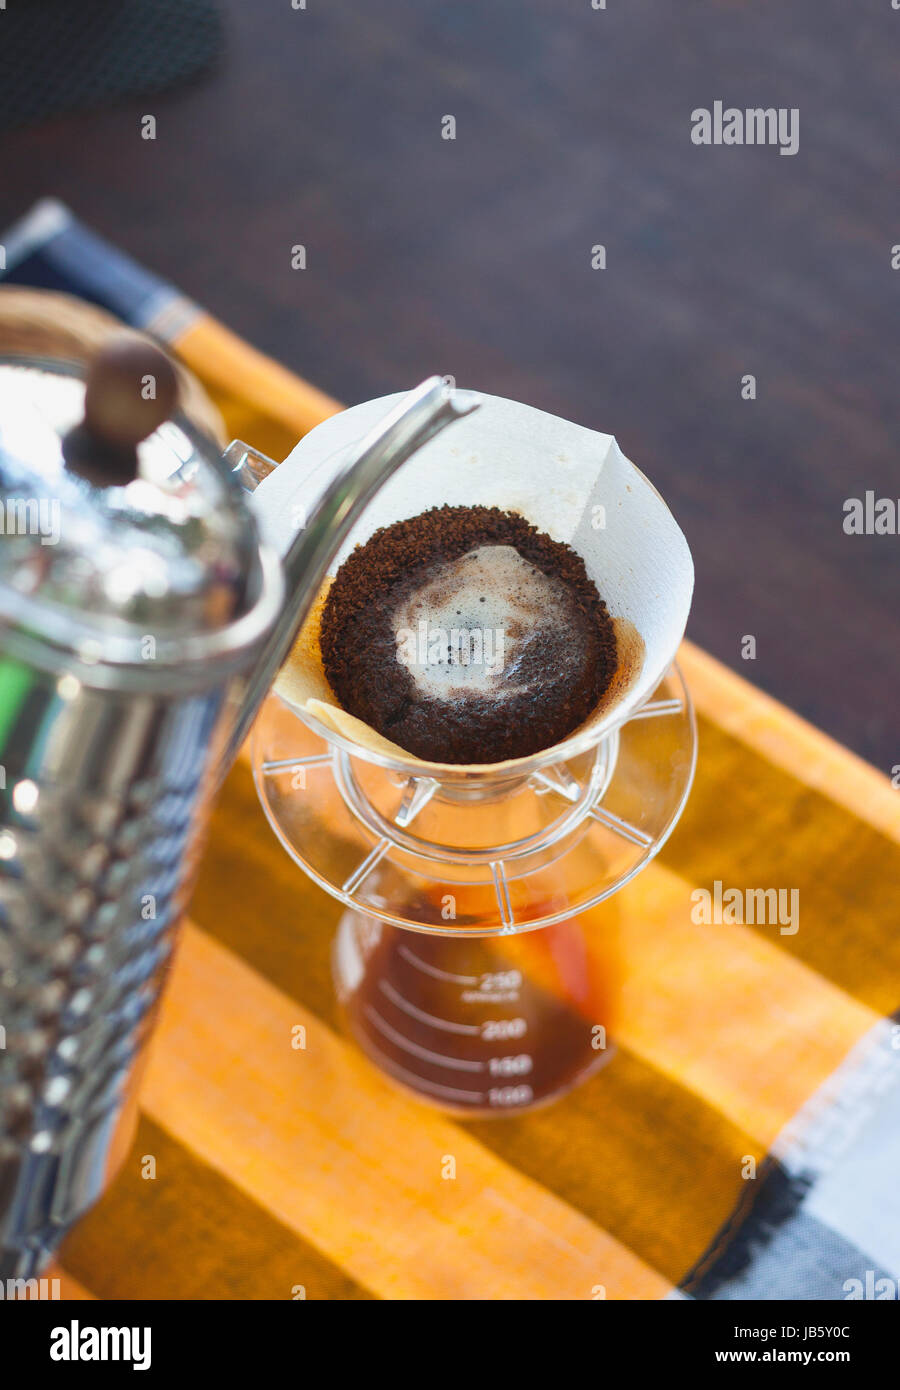 Pour Over Coffee Drip Brewing with paper filter while coffee blooming Stock Photo